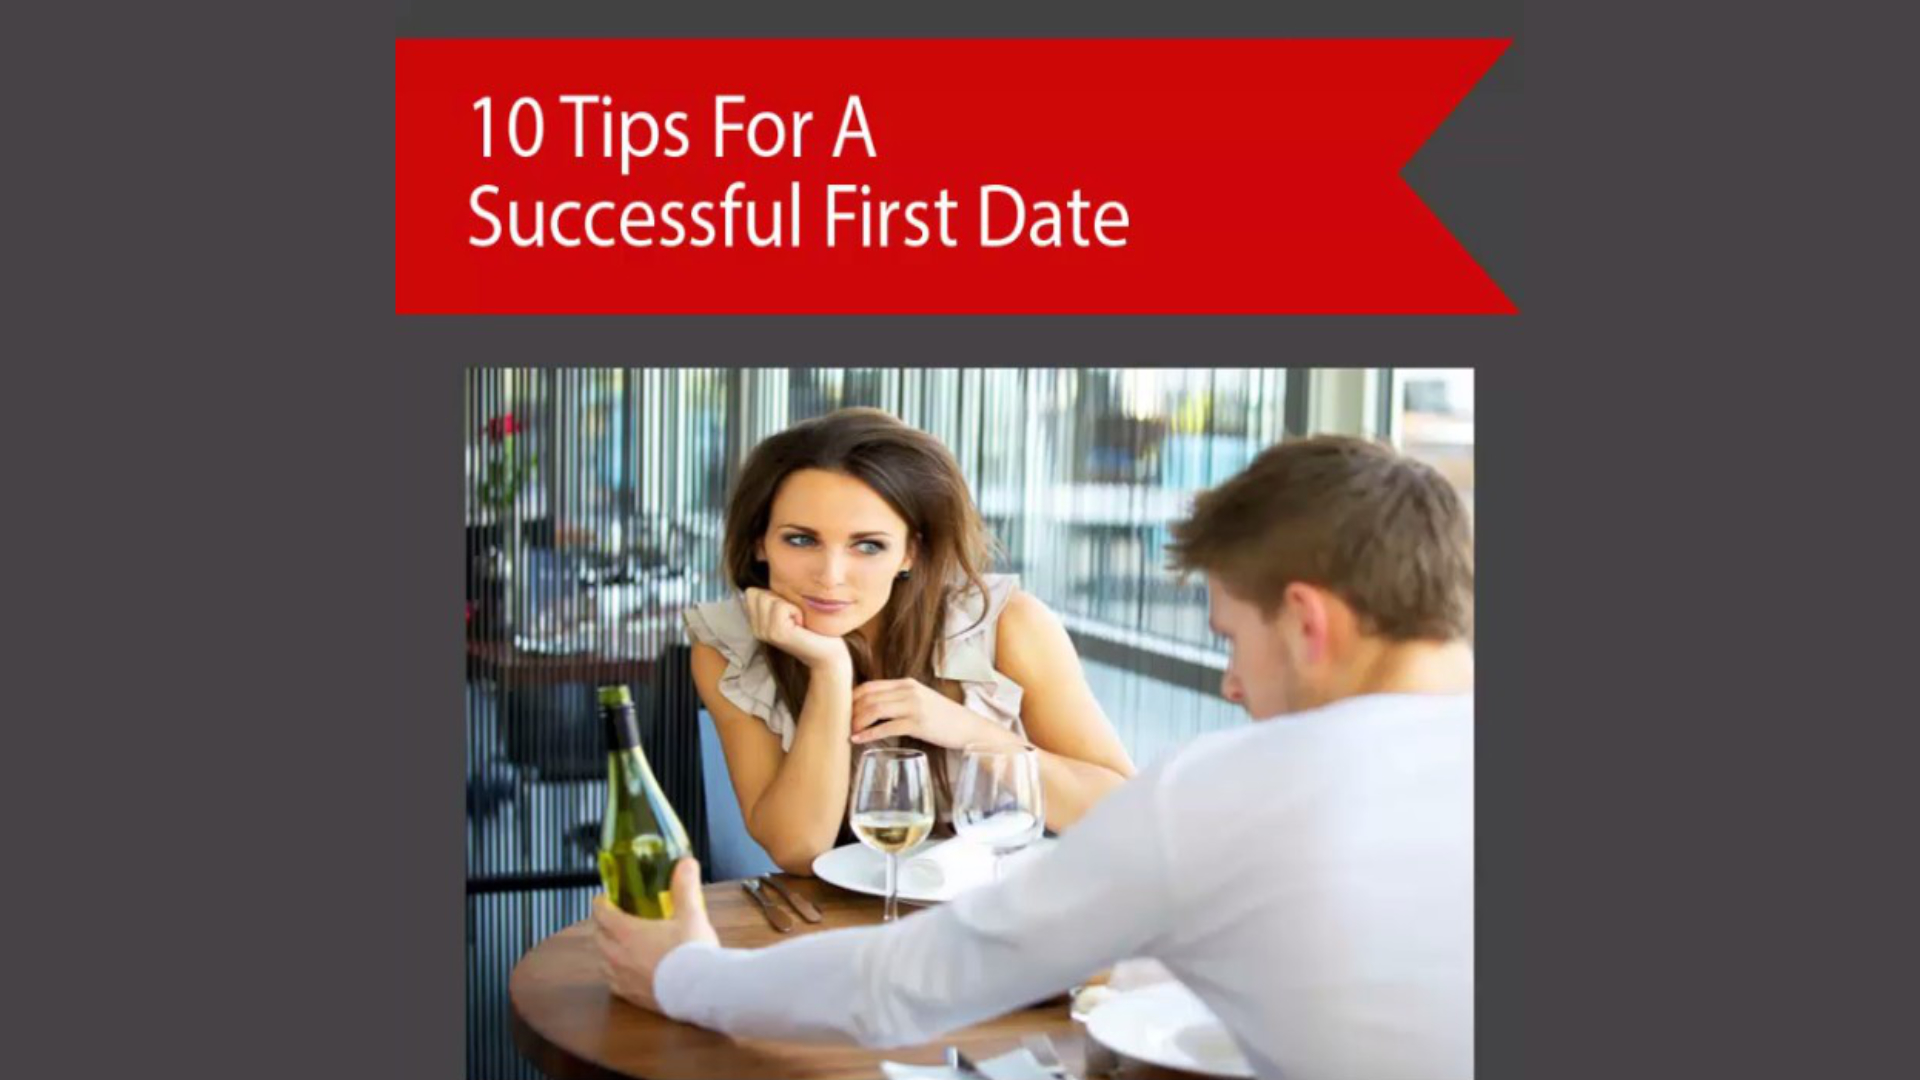 10 Tops For A Successful First Date